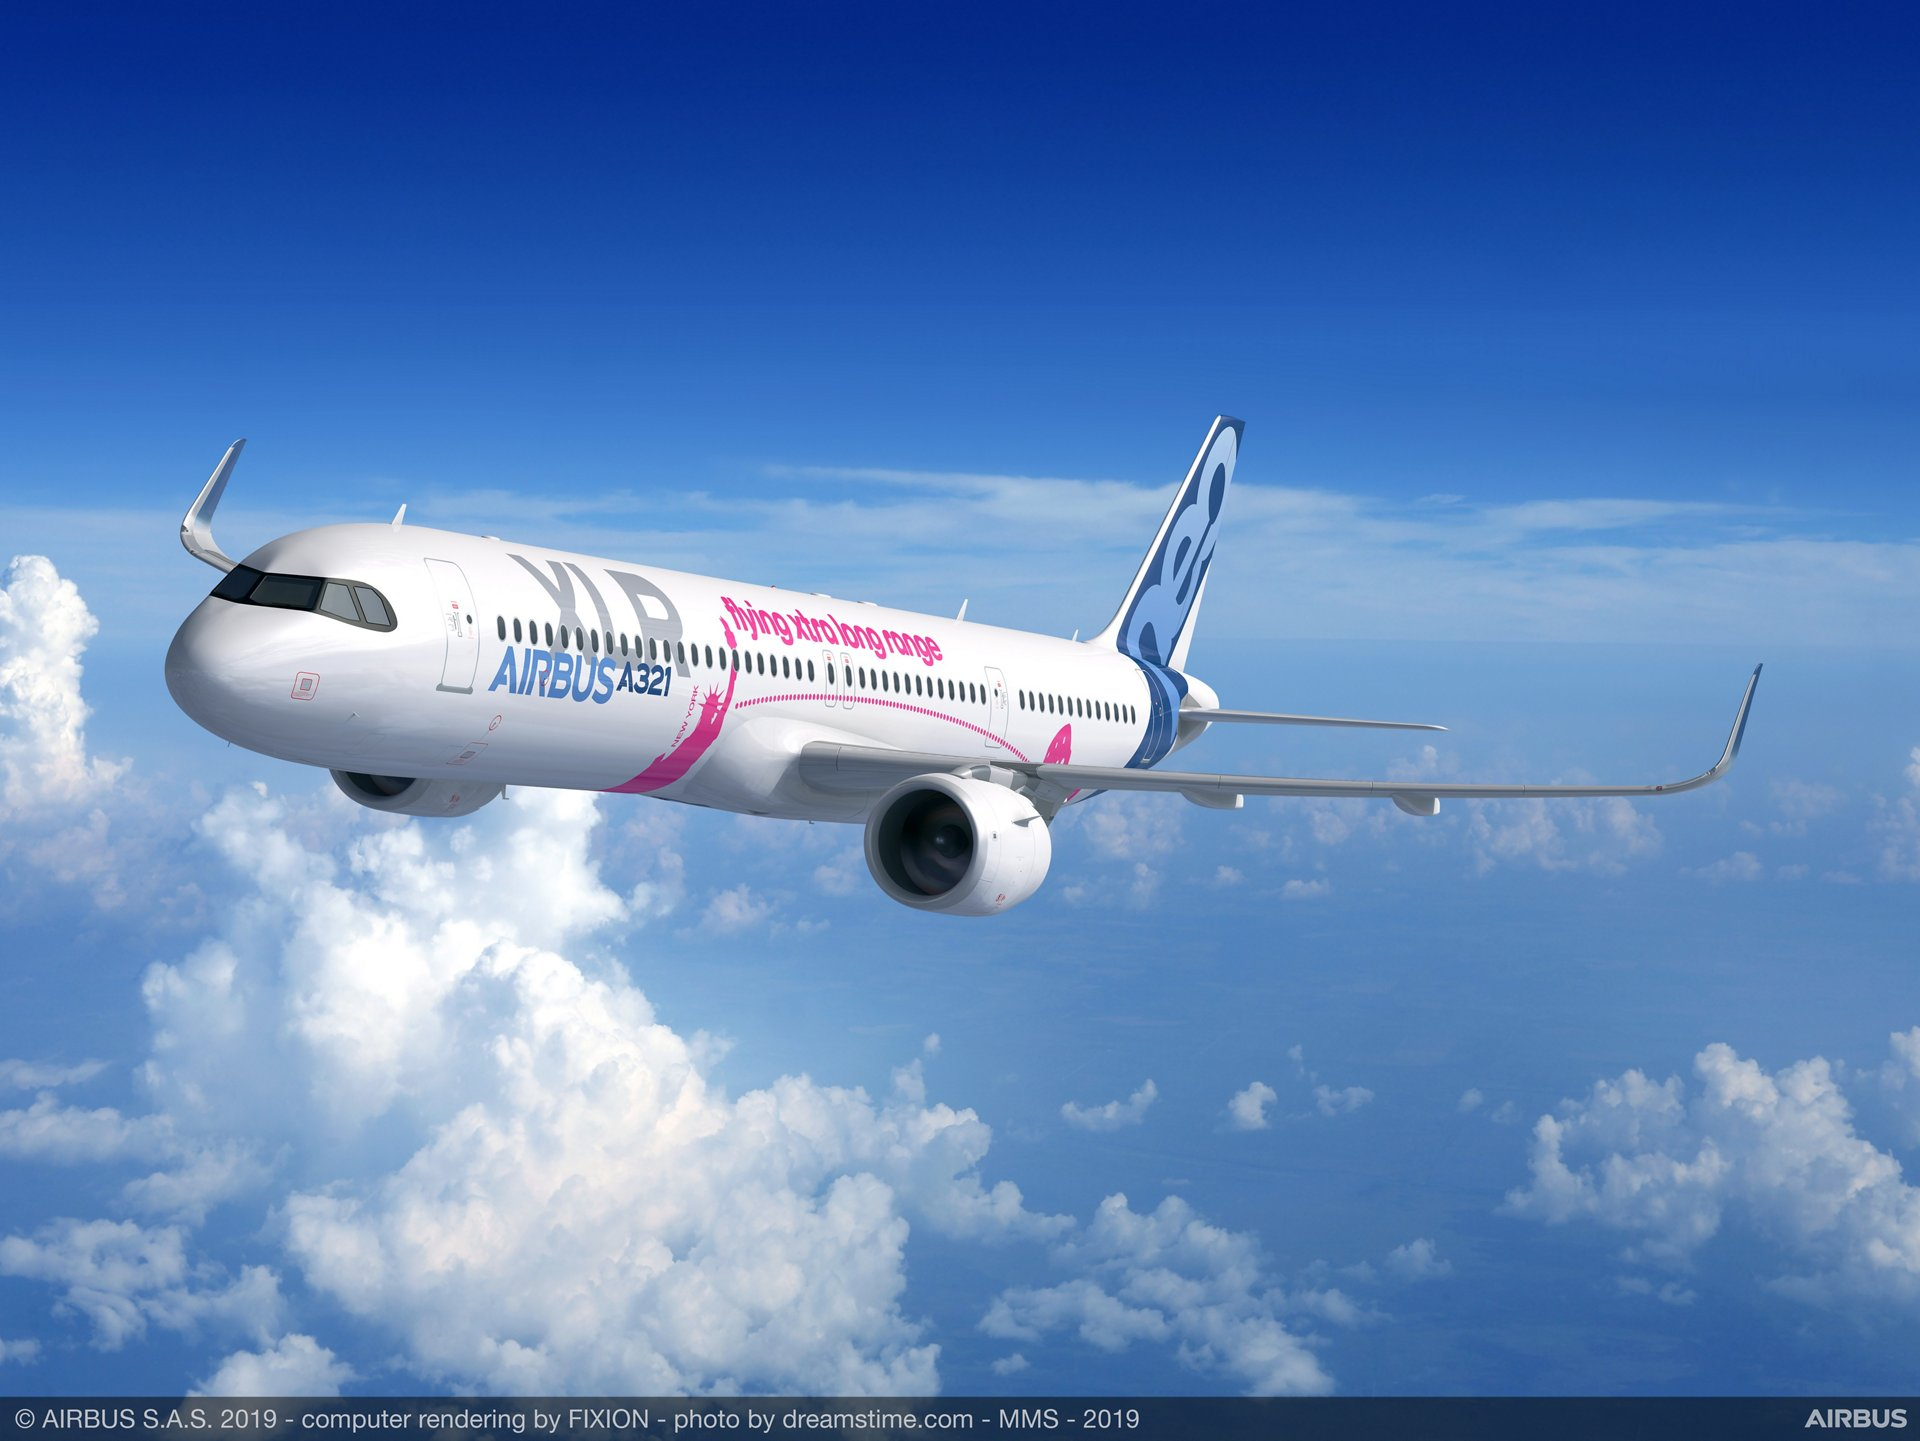 Airbus' newly-launched A321XLR responds to market needs for even more range, and creates more value for airlines by bringing 30% lower fuel burn per seat than previous-generation competitor aircraft